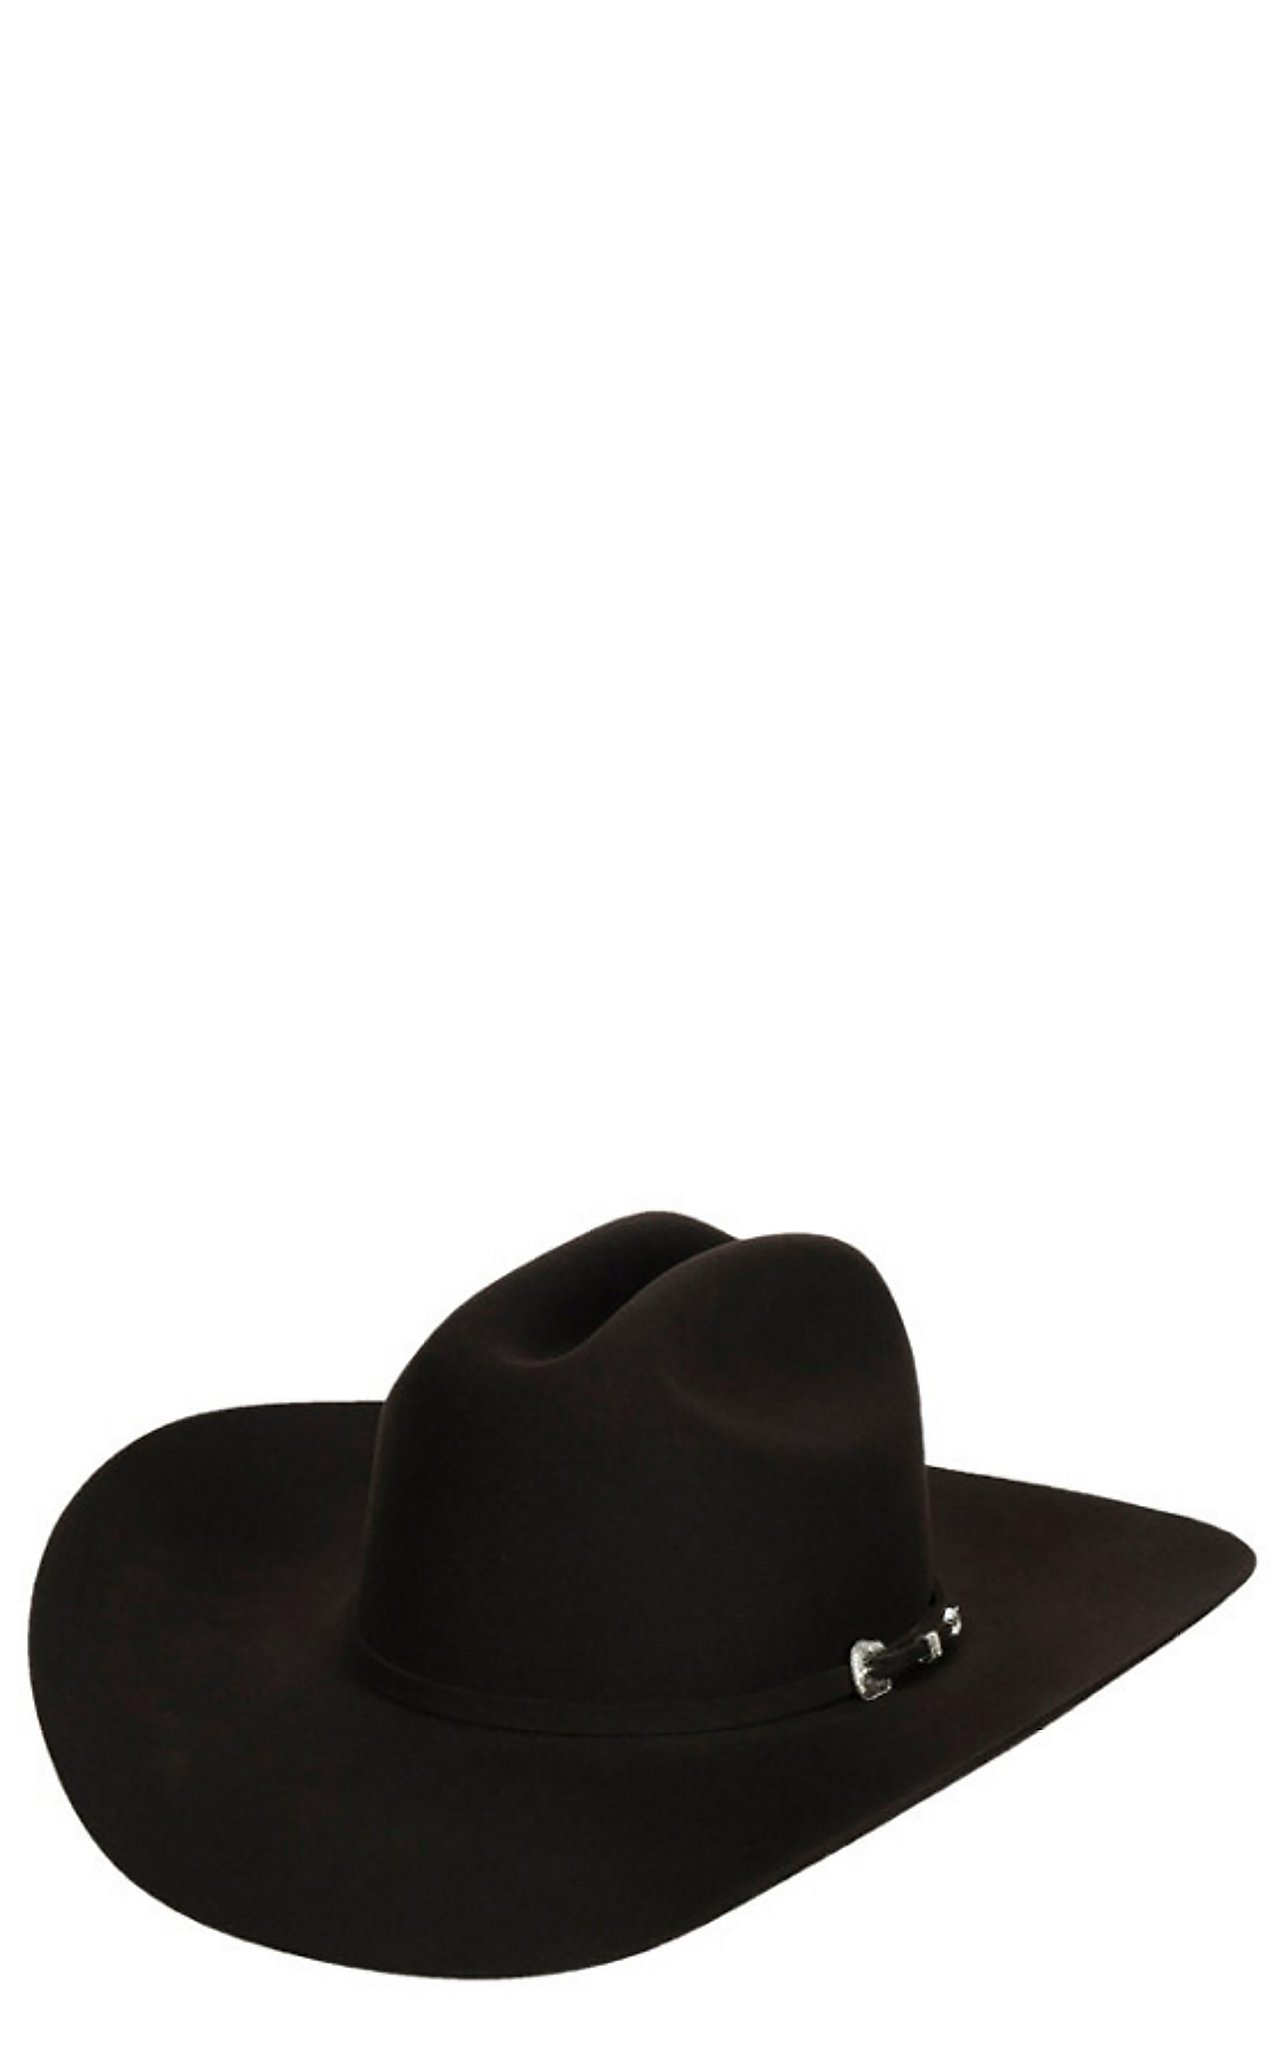 Cavender s 4X Chocolate Rodeo Collection Felt Cowboy Hat  f030cfc8df0